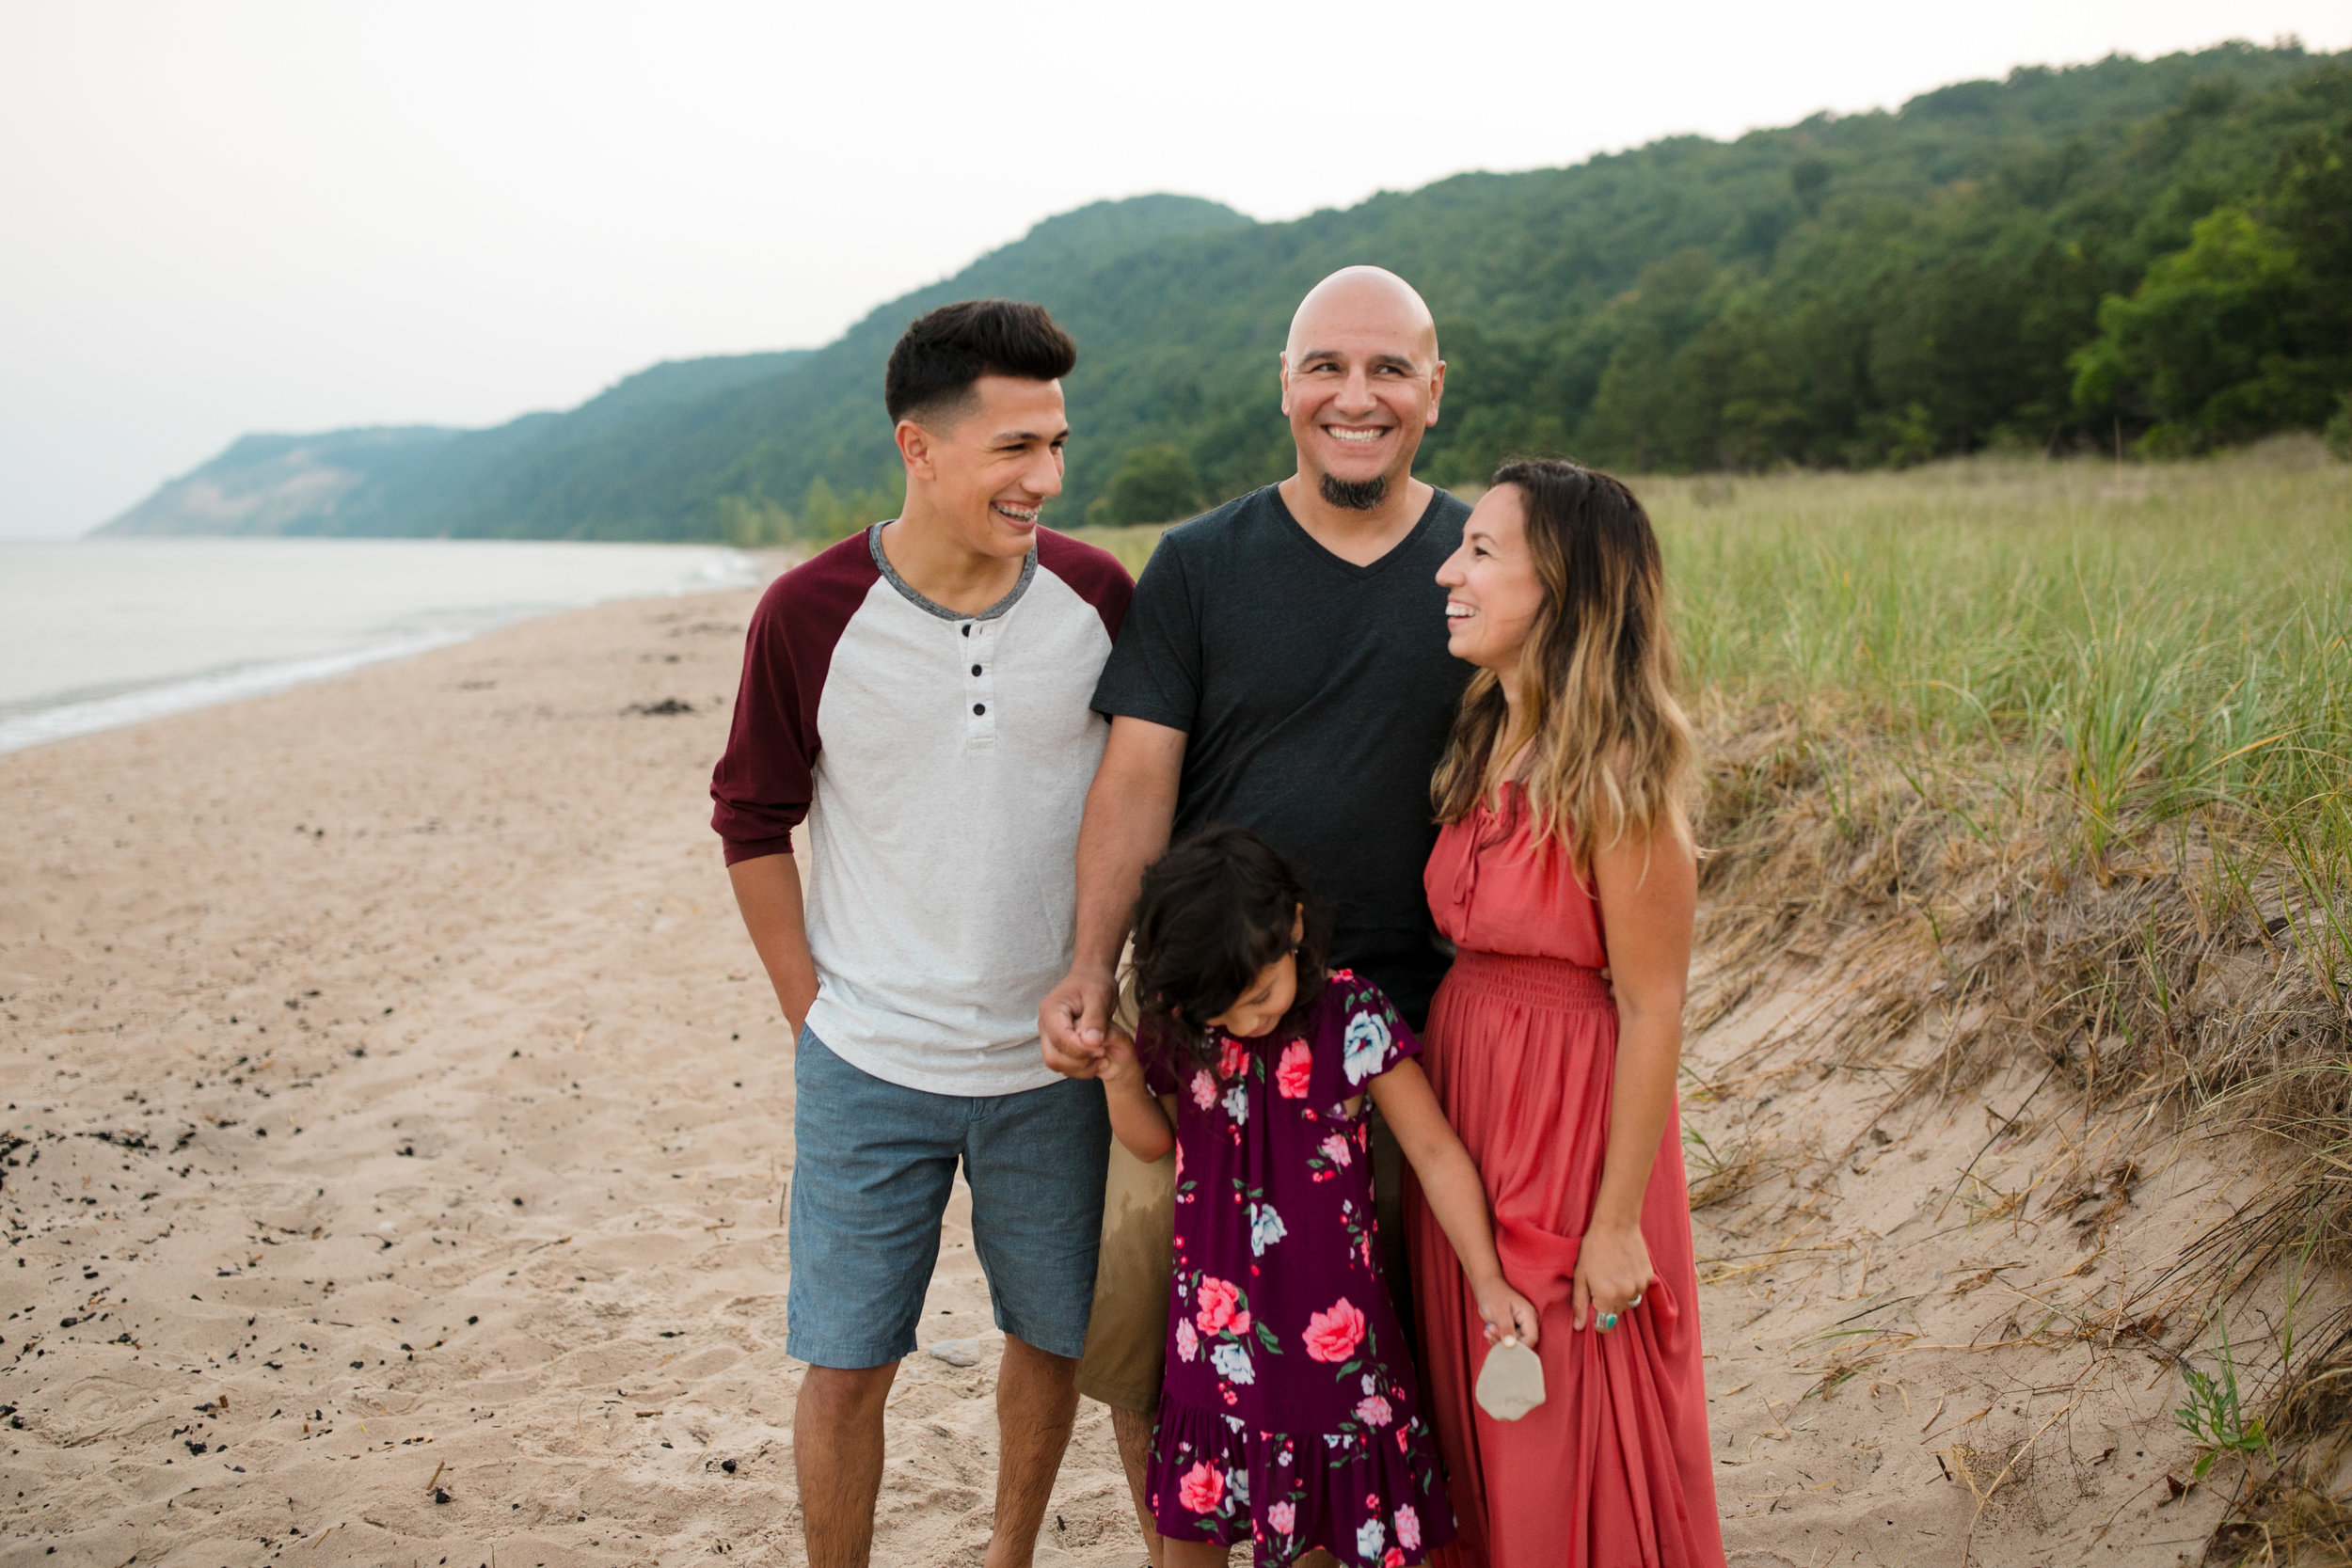 michigan-storytelling-photographer-esch-road-beach-empire-mi-santellano-family-49 - Copy.jpg